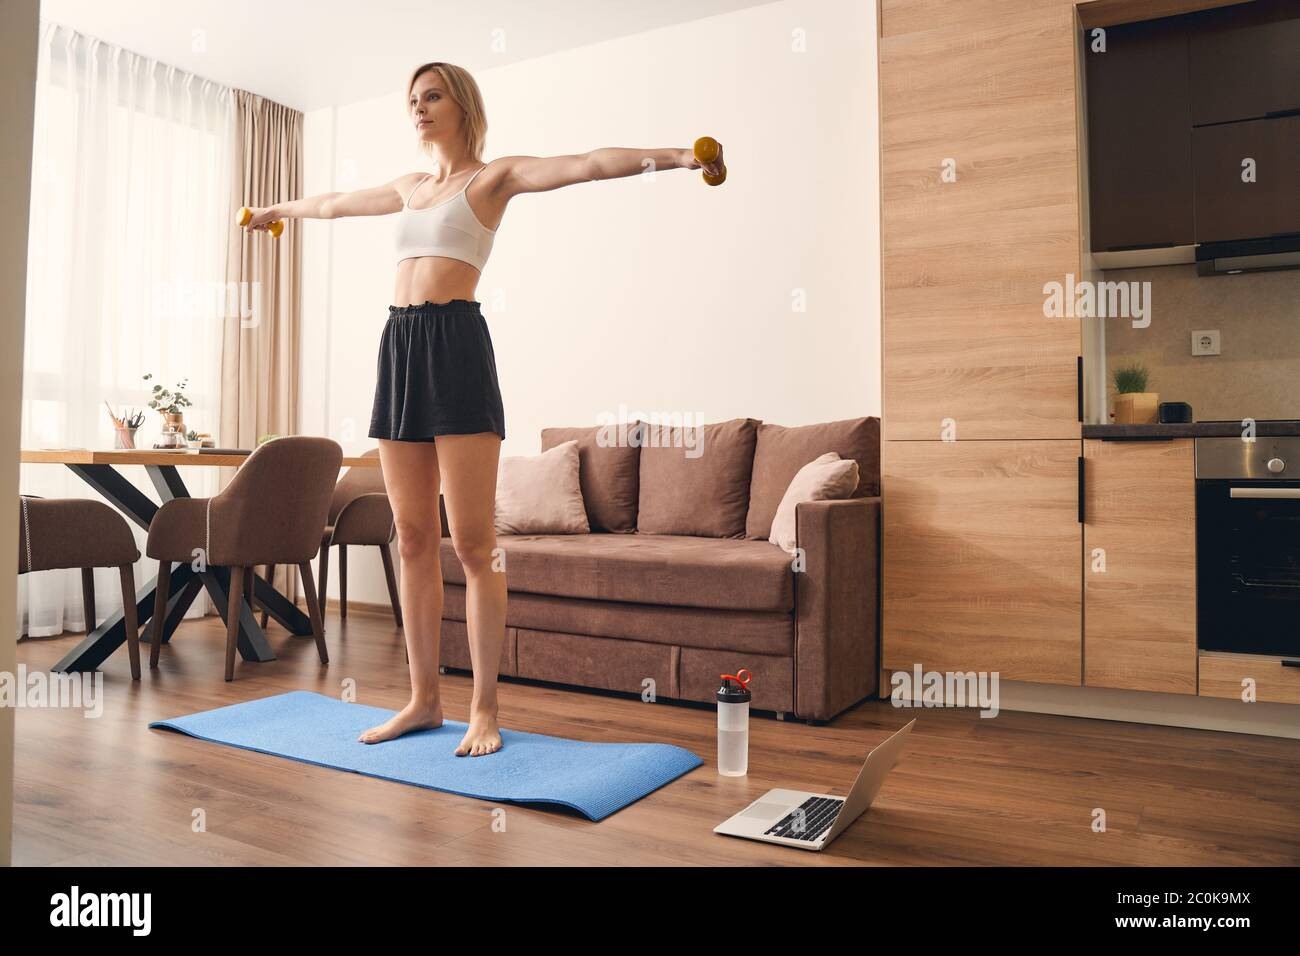 Fit lady doing an exercise with weights Stock Photo